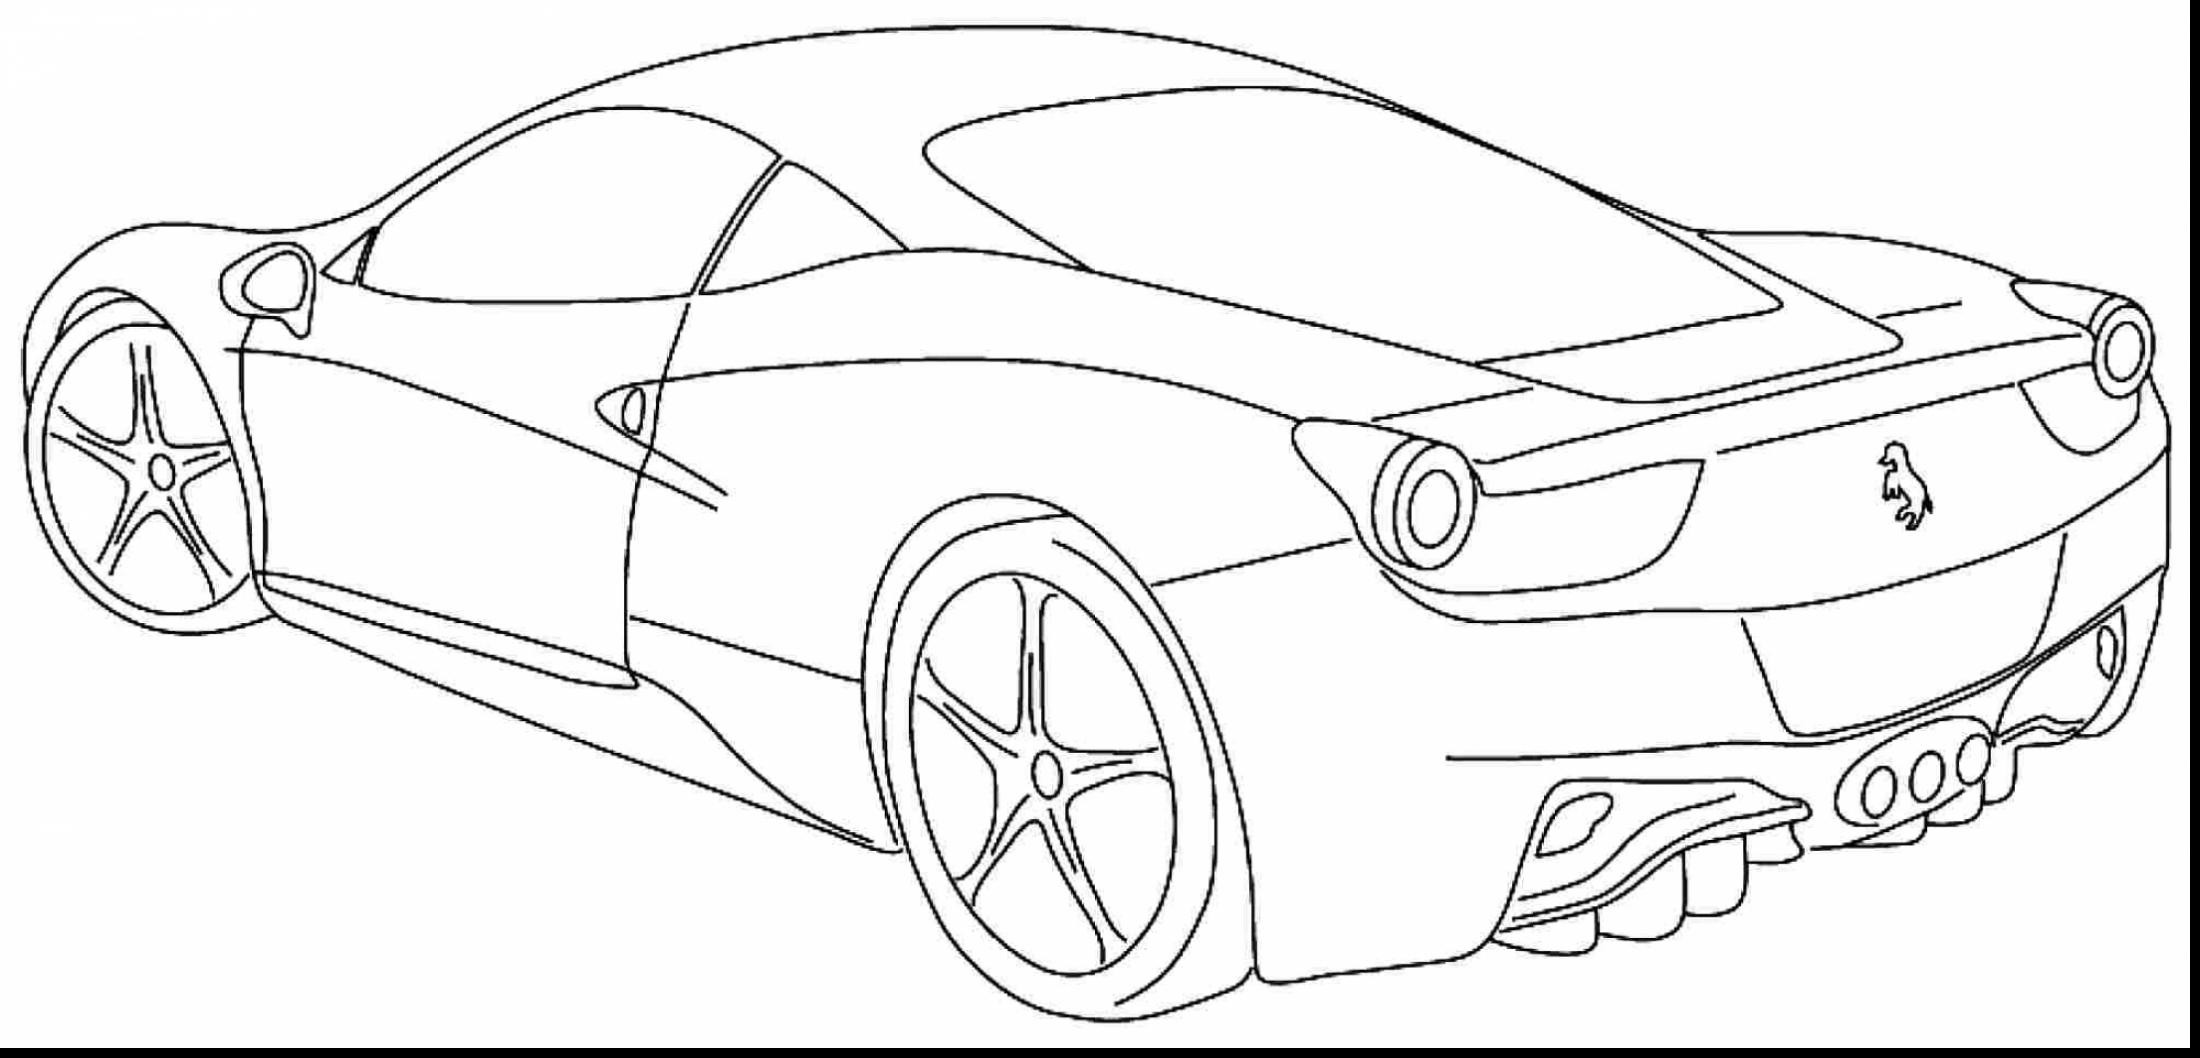 2200x1058 Cars Coloring Pages Luxury Ford Mustang Car Coloring Page